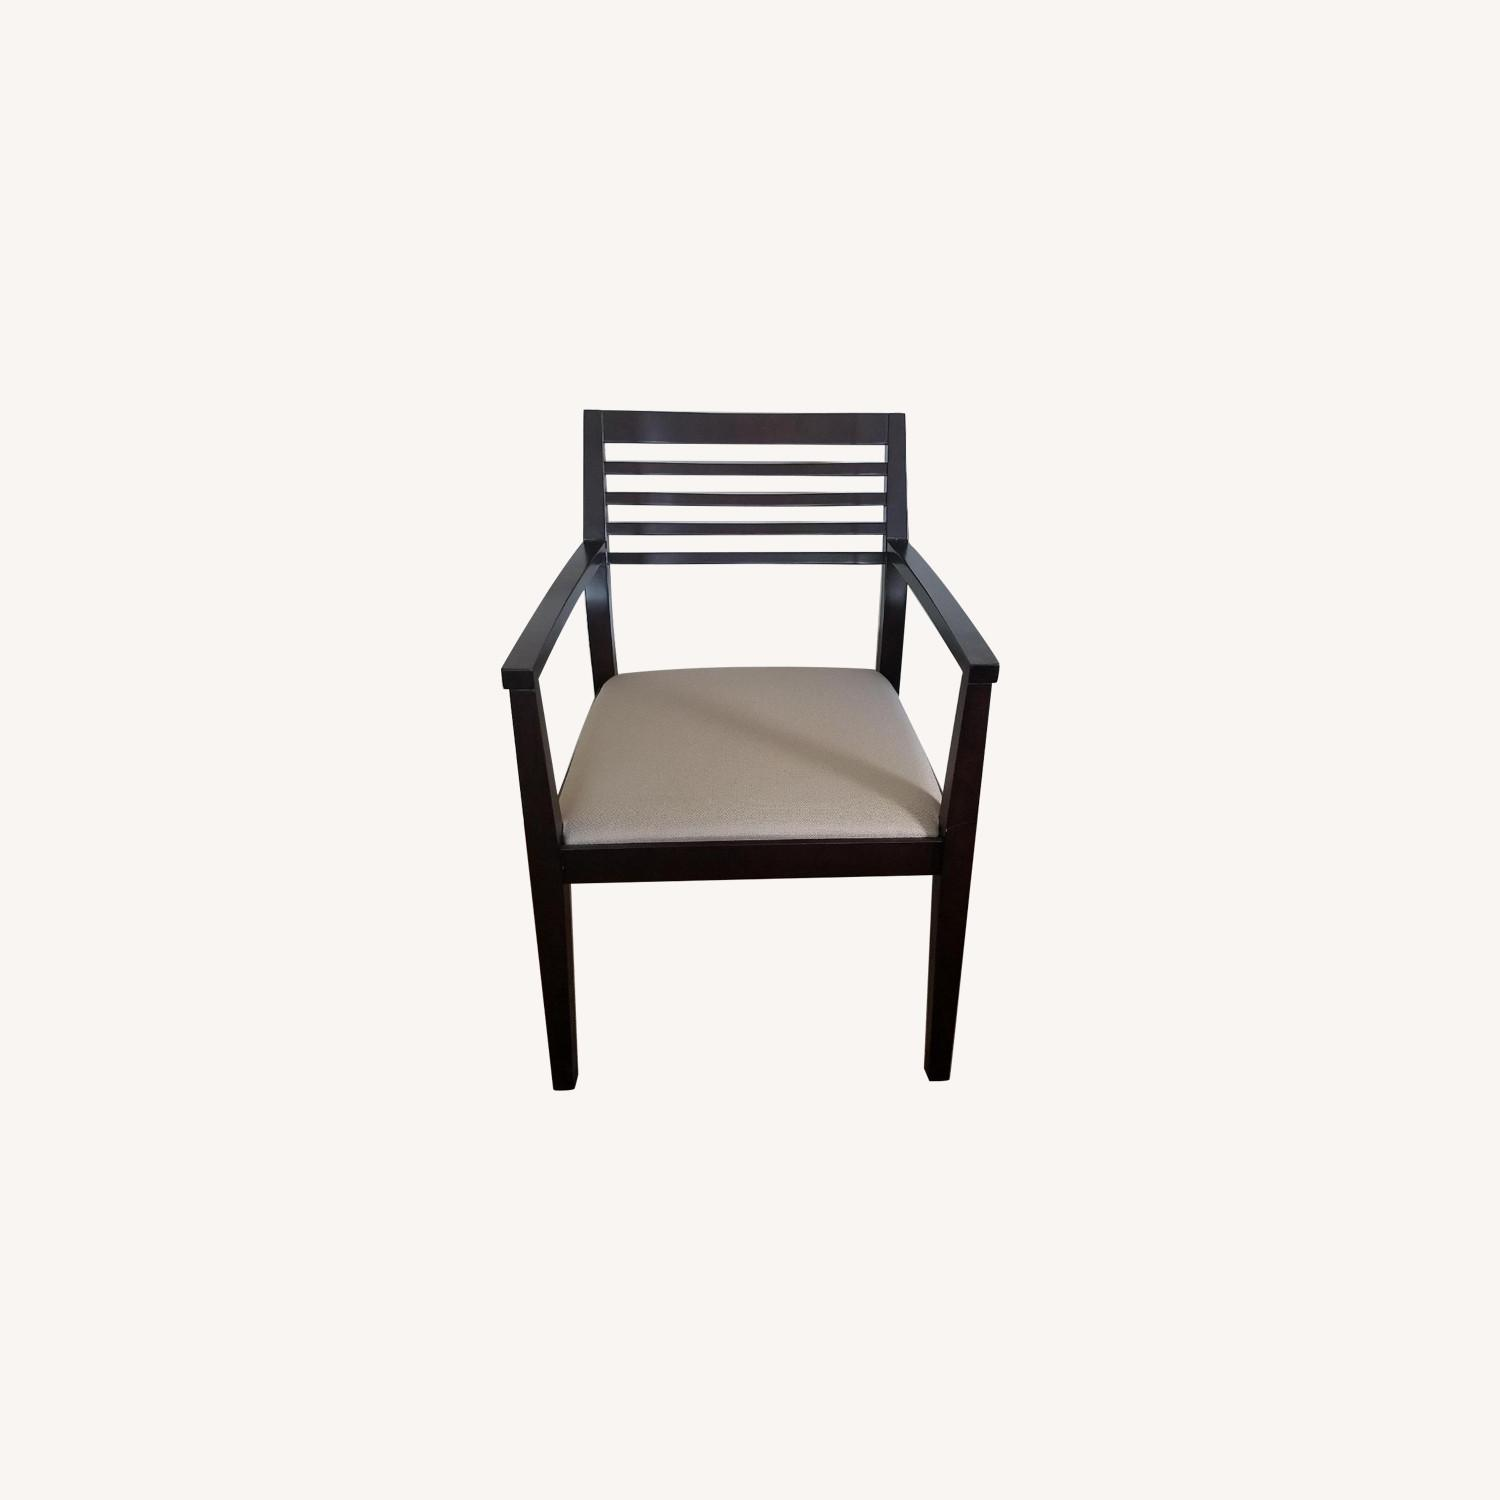 Wooden Office Chair w/ Cream Cushion - image-0